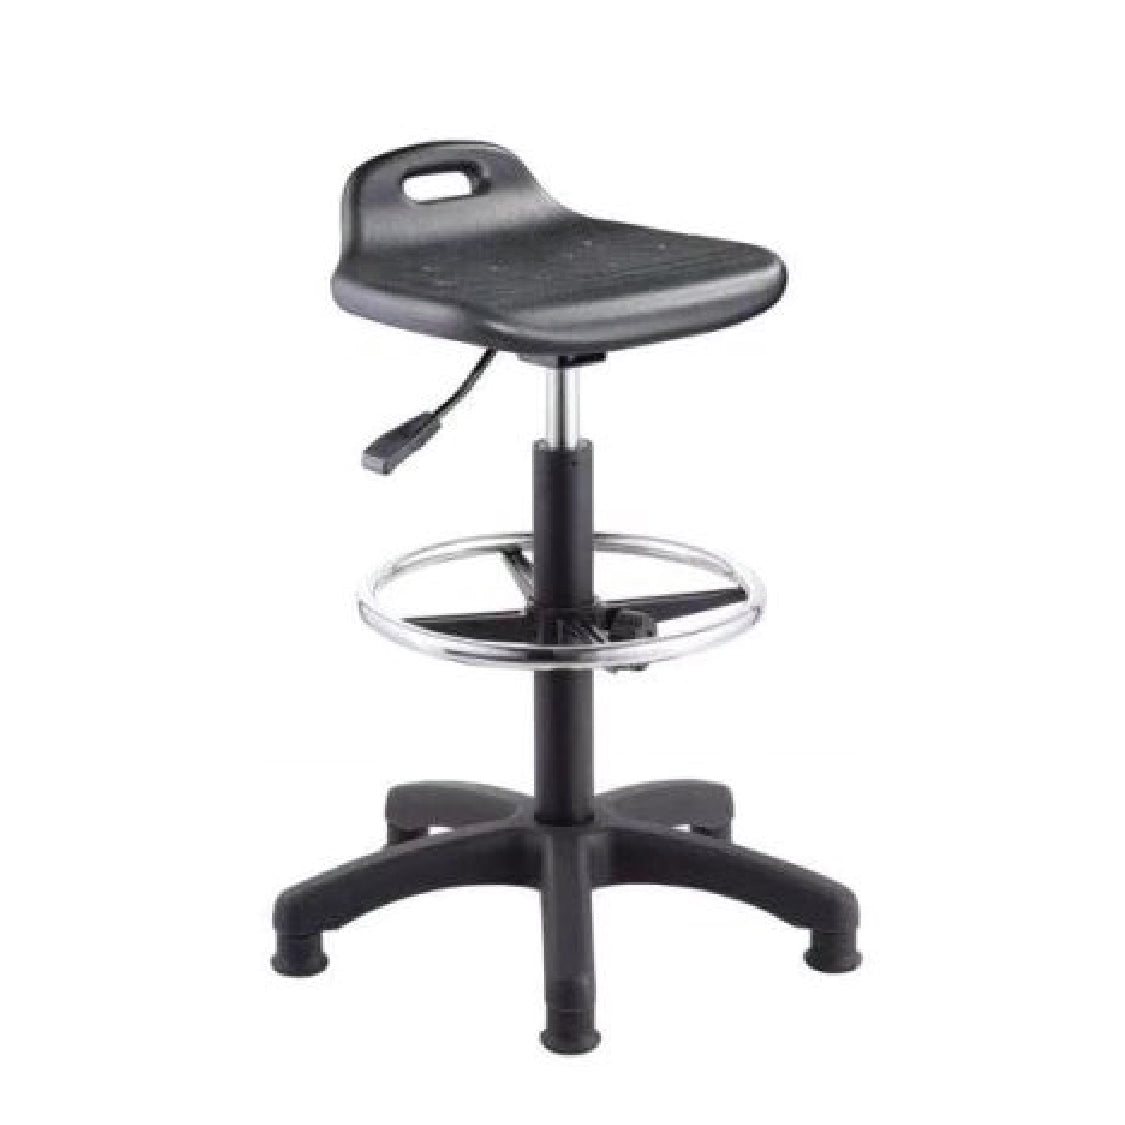 Richard Dr Stool Chair